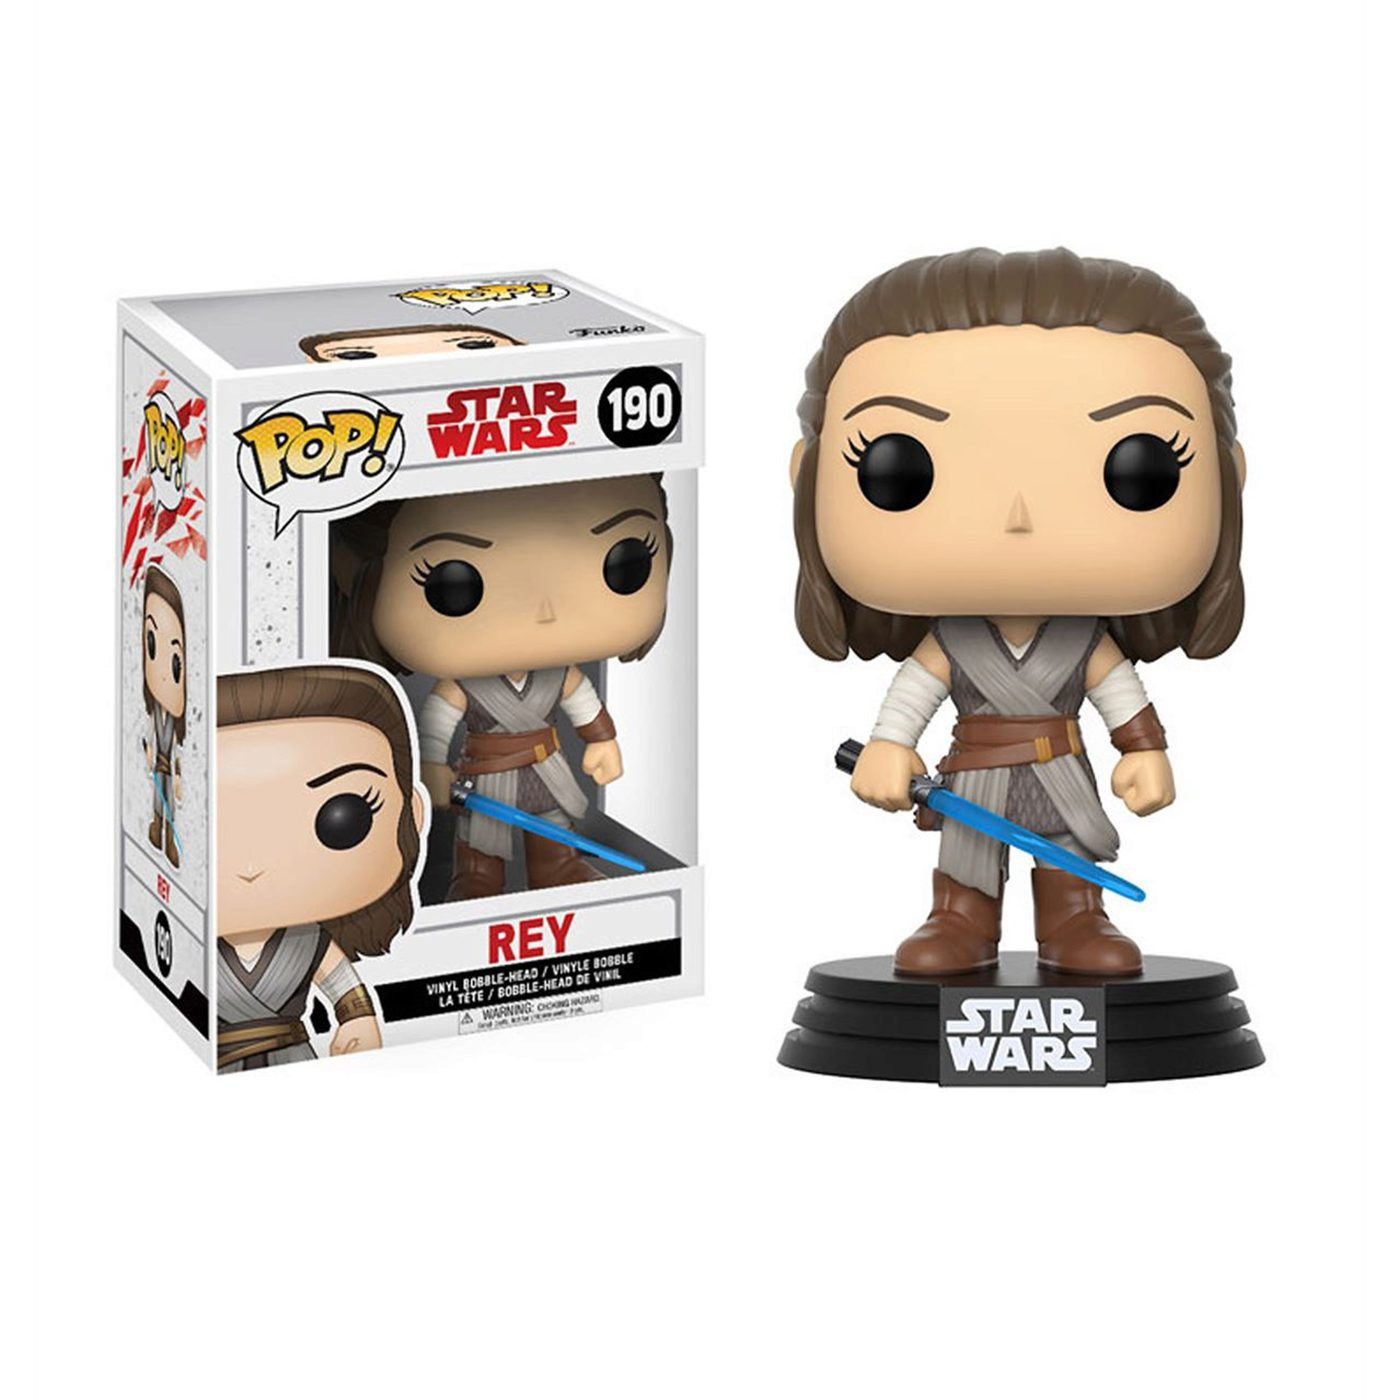 Star Wars The Last Jedi Rey Funko Pop Bobble Head